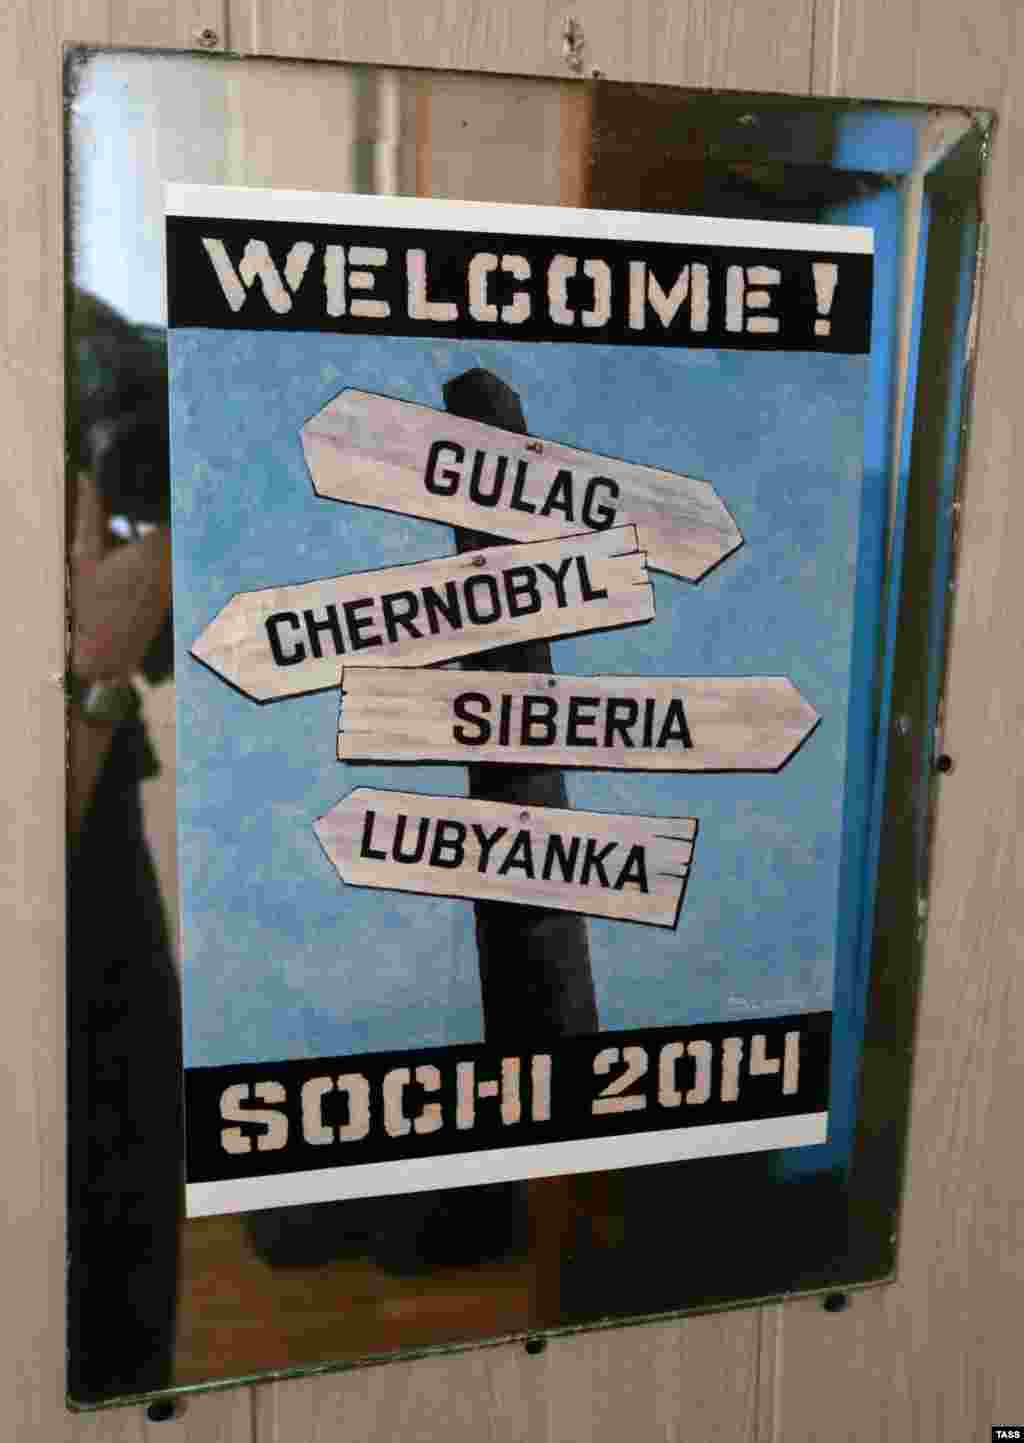 Signs point visitors to the GULAG, the Chornobyl nuclear plant, Siberia, and Lubyanka, the seat of the Federal Security Service (FSB).